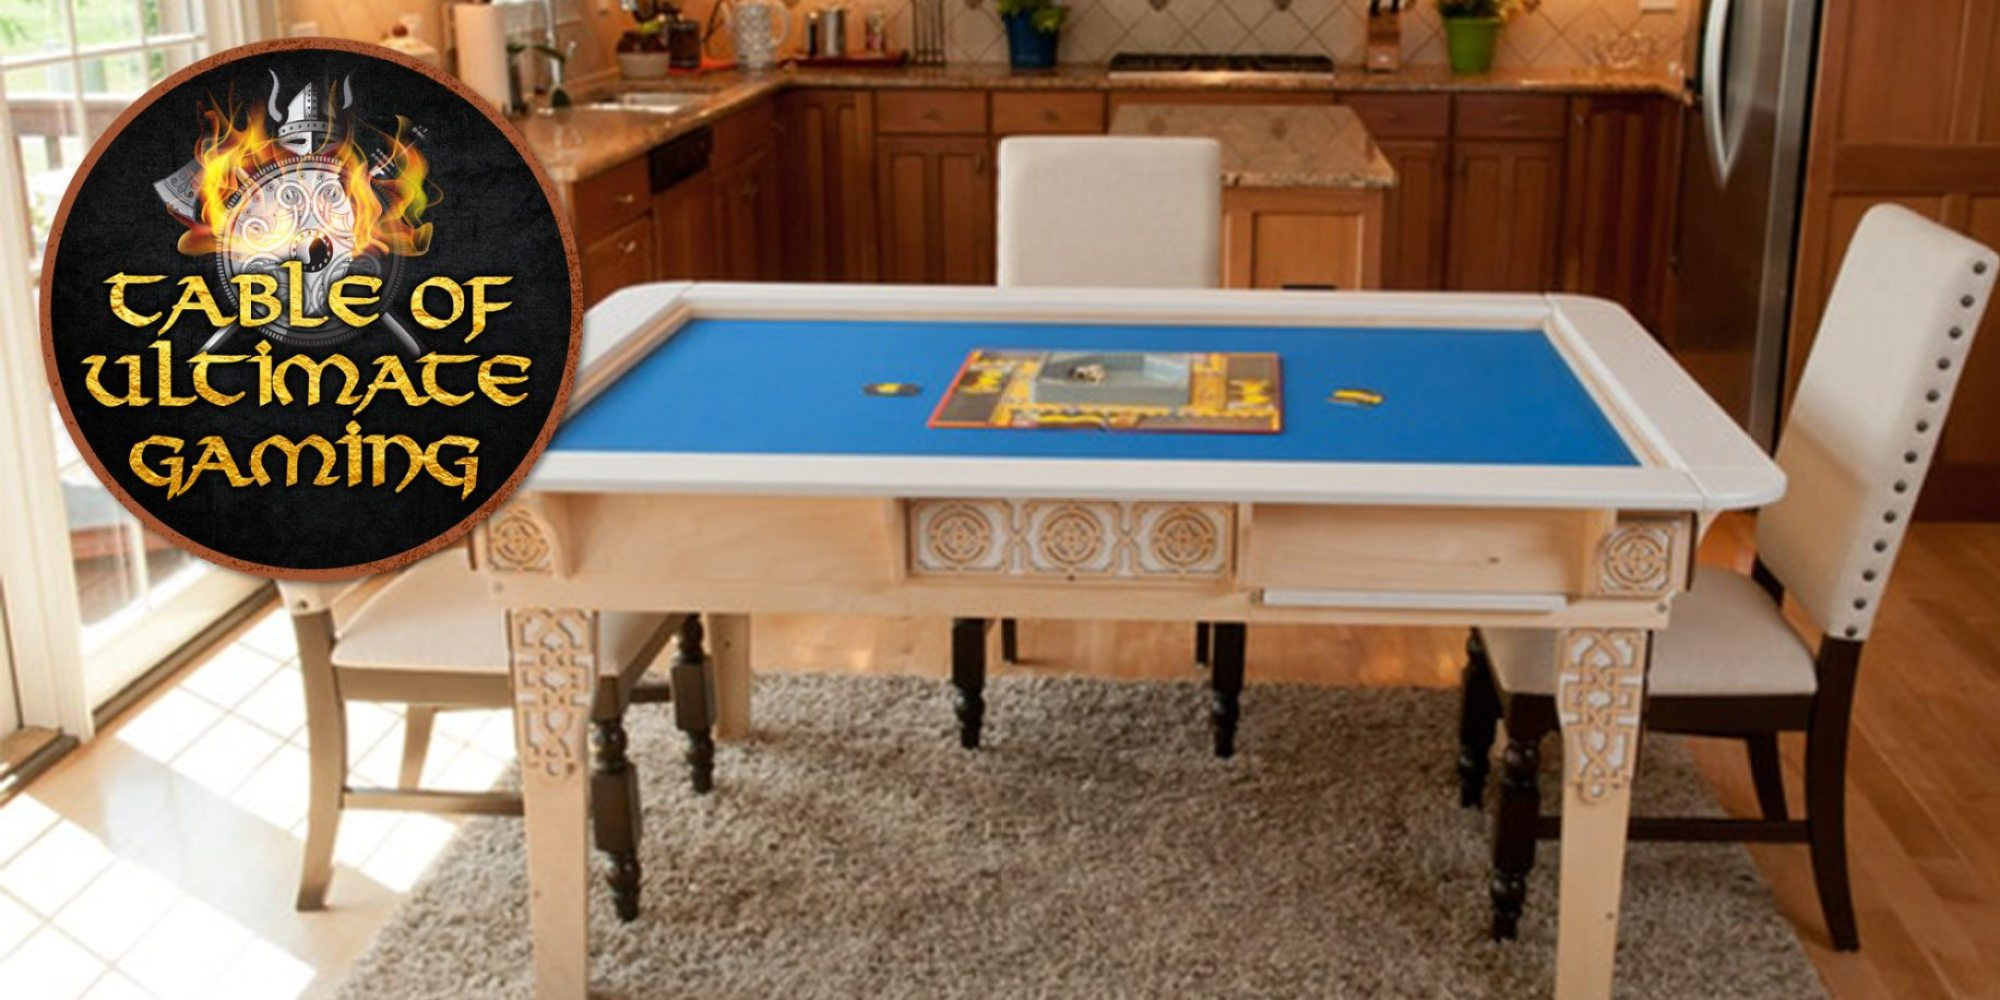 The Table Of Ultimate Gaming Launches On Kickstarter Geekdad